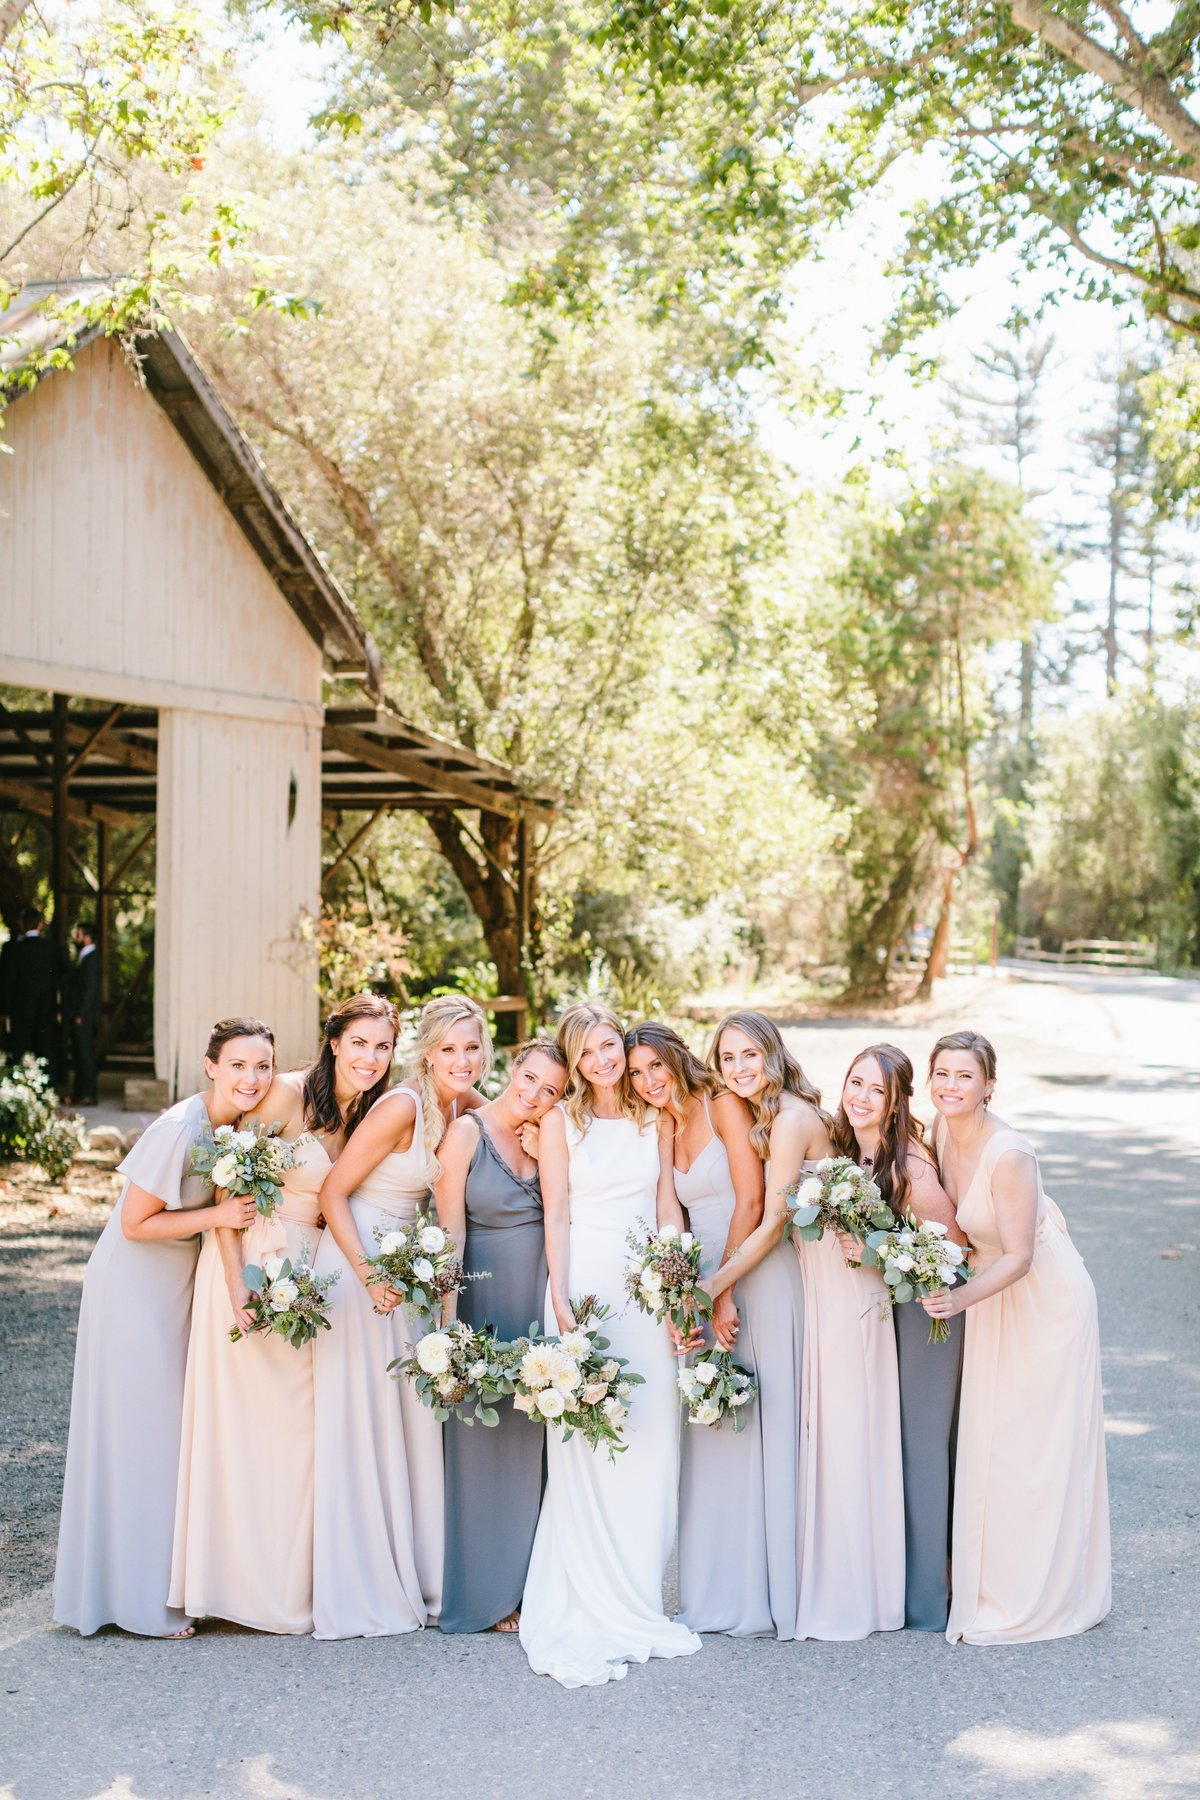 Best California Wedding Photographer-Jodee Debes Photography-140